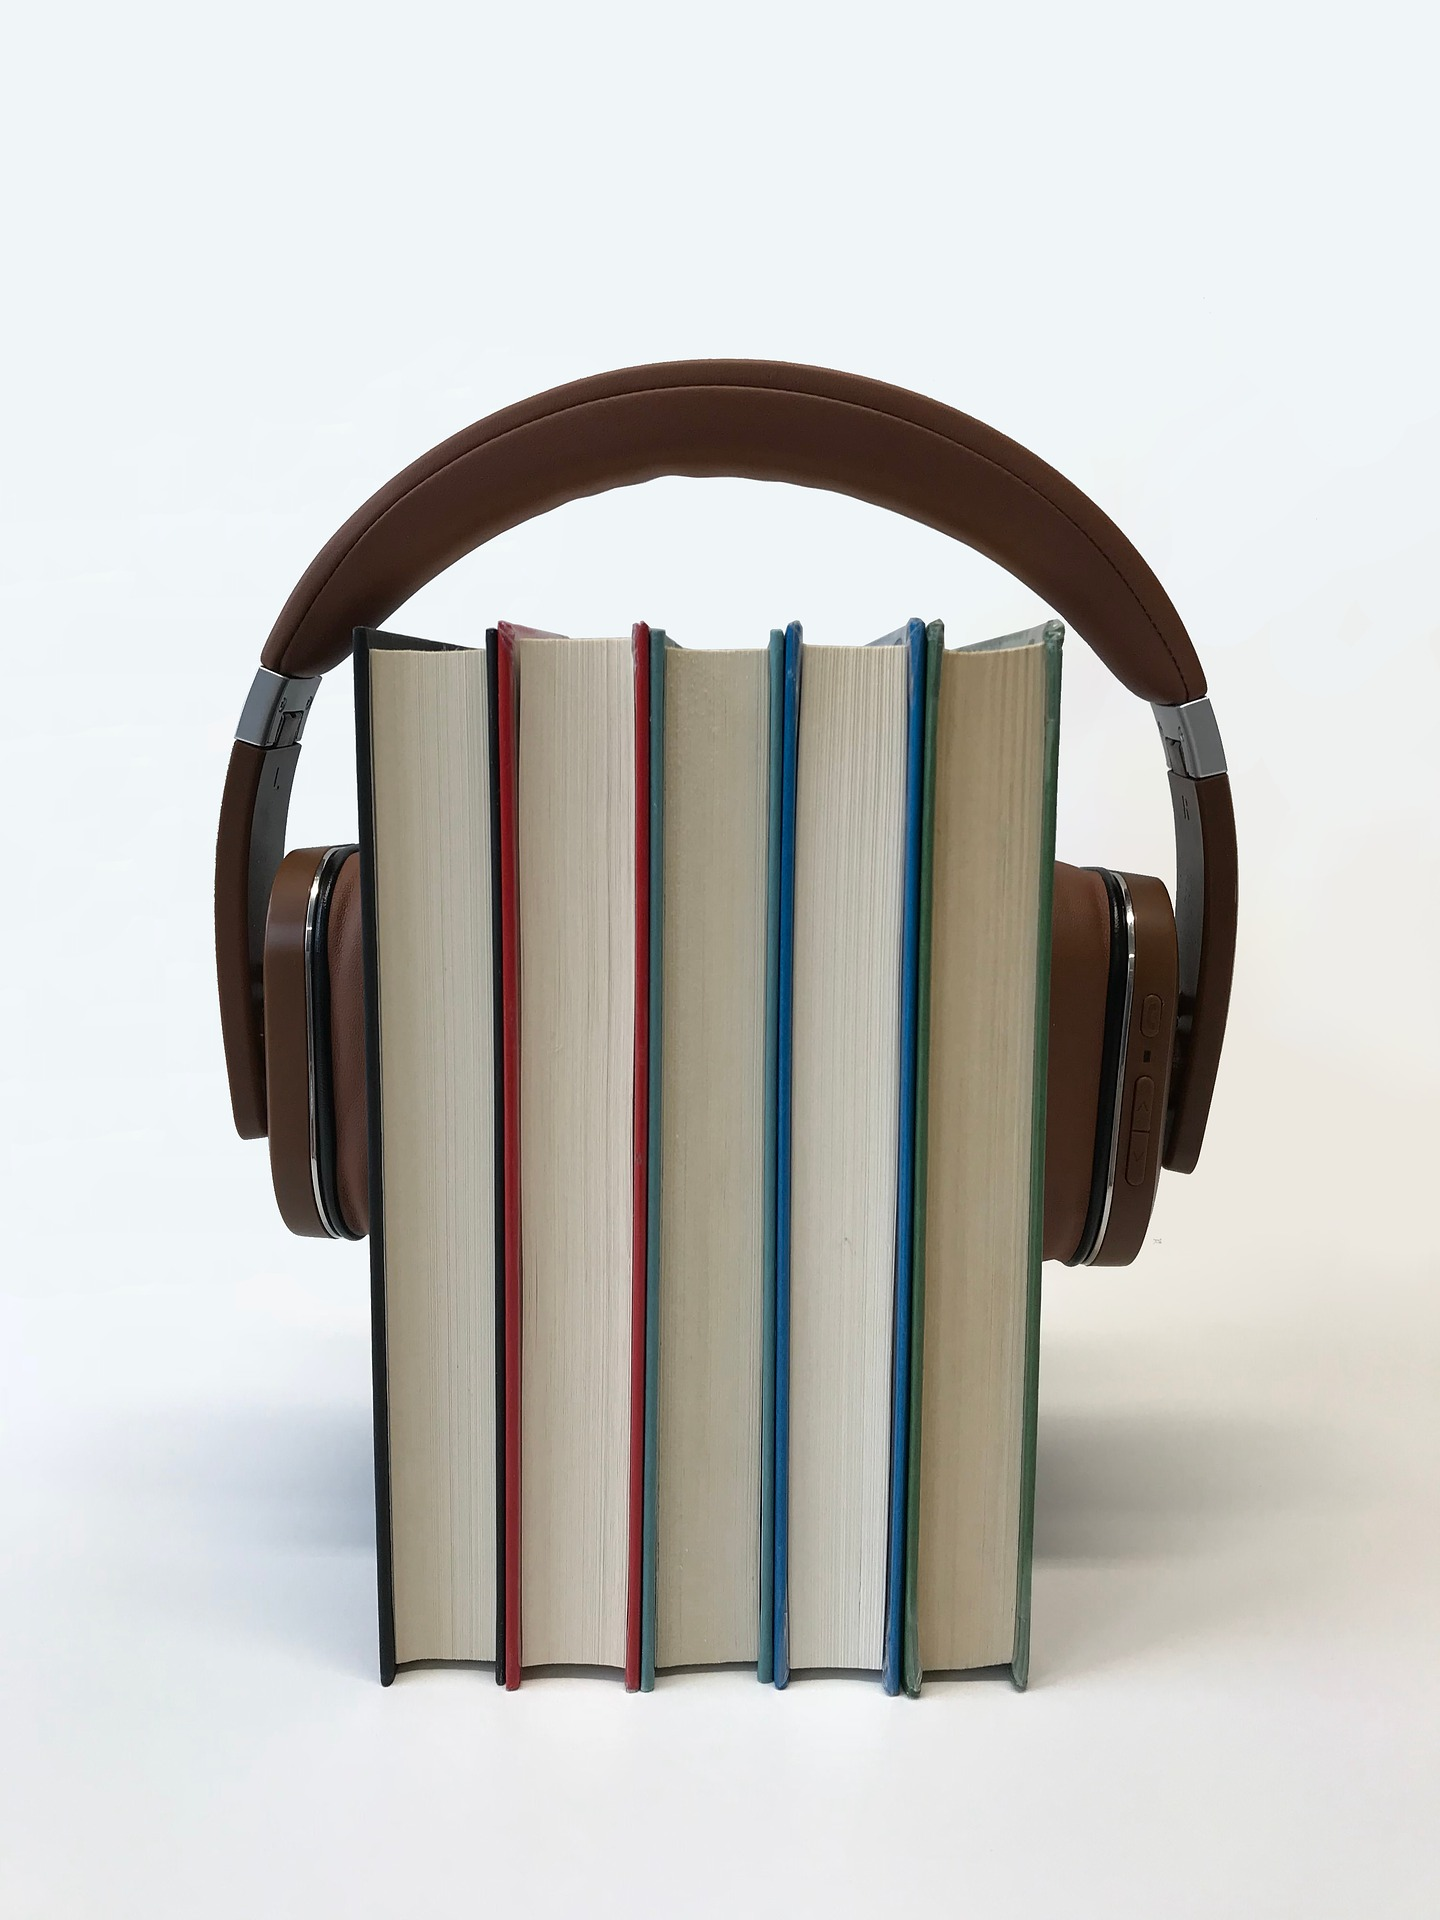 All about audio books